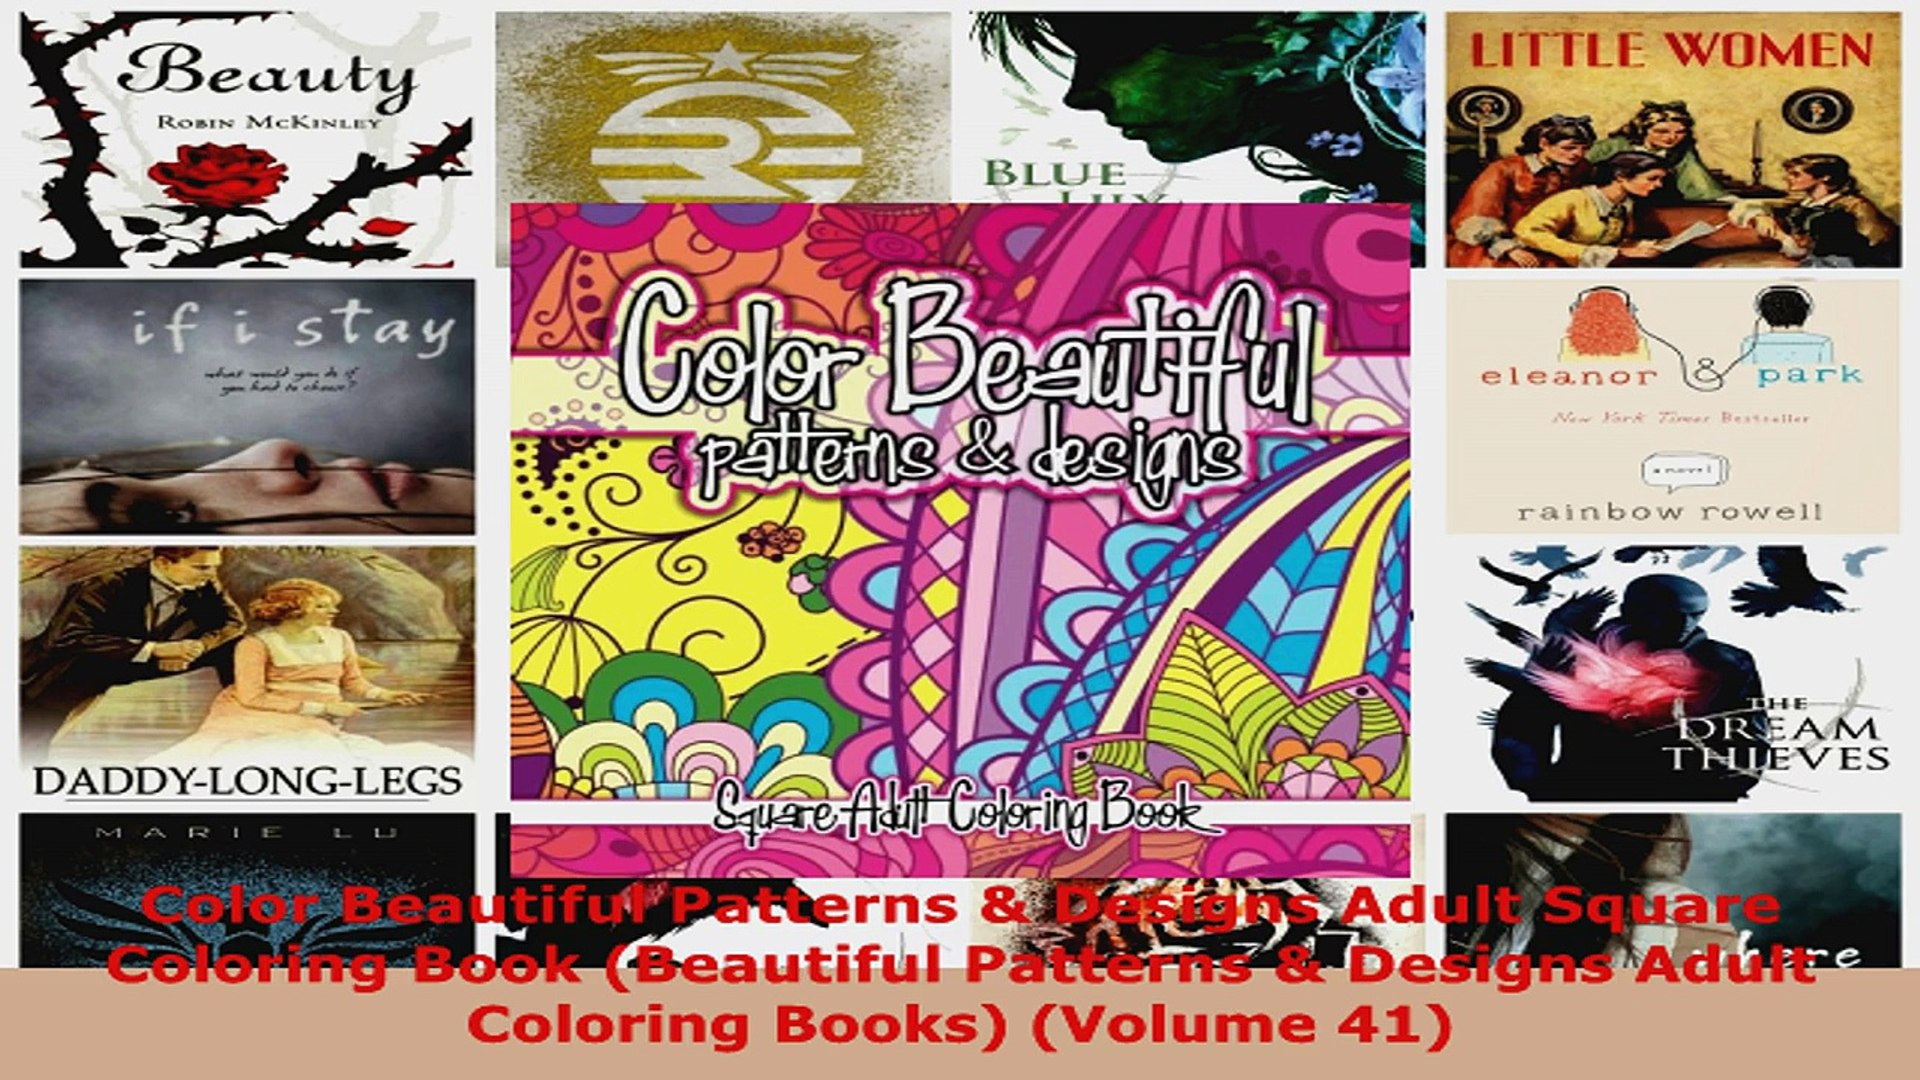 Read  Color Beautiful Patterns  Designs Adult Square Coloring Book Beautiful Patterns  Ebook Free